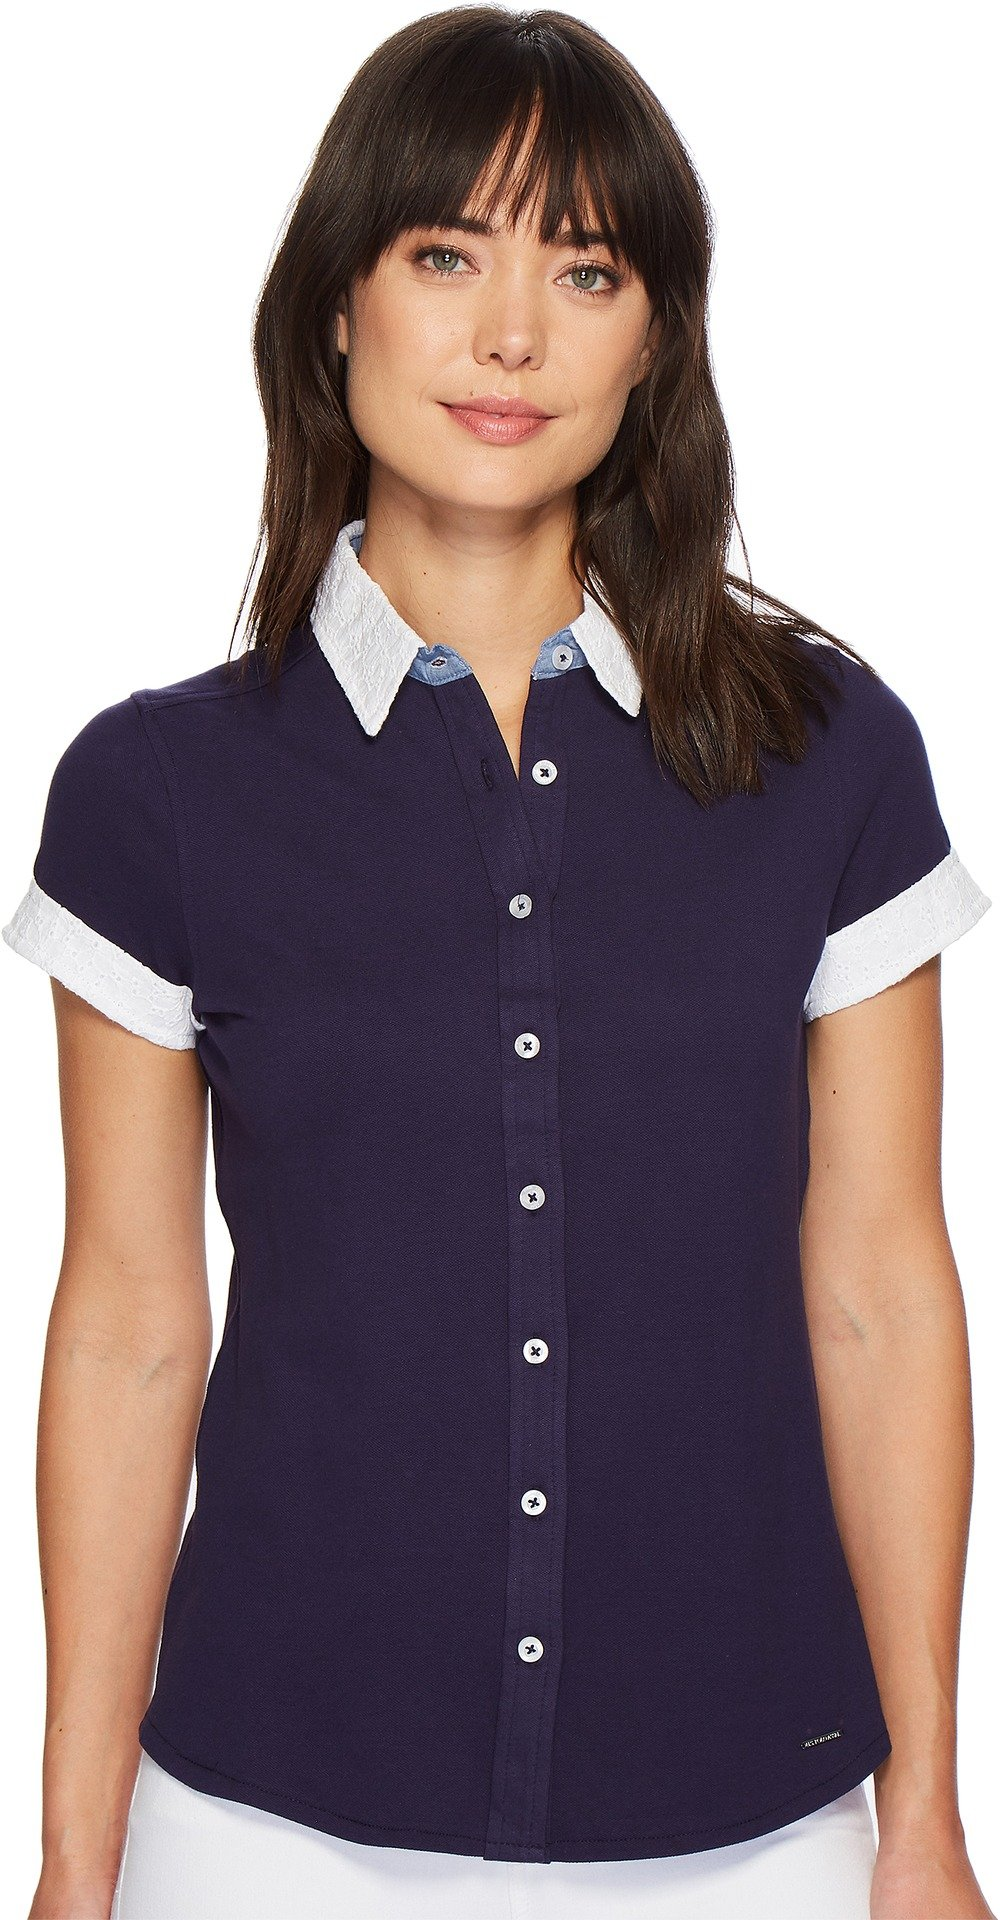 U.S. Polo Assn. Women's Short Sleeve Fashion Blouse, Evening Blue, L